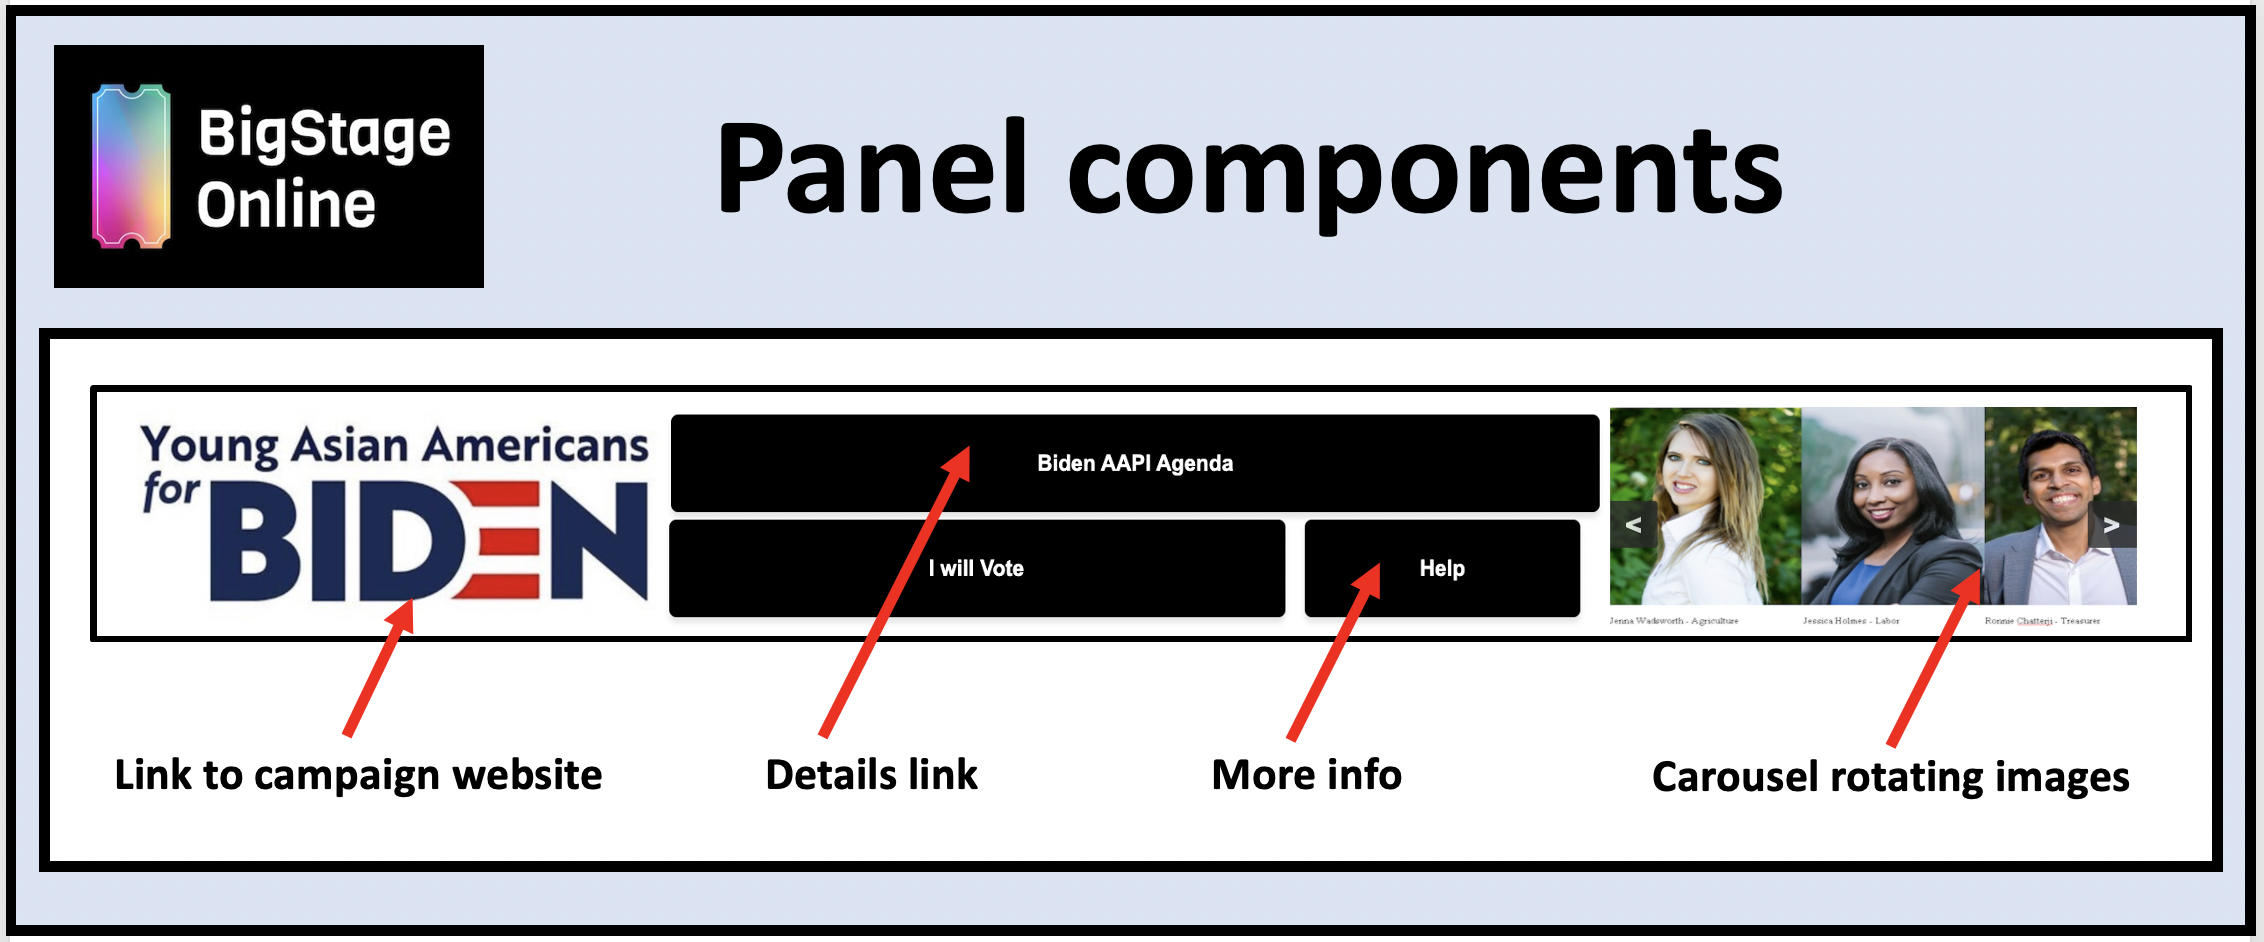 BigStage panel components that define the images to be shown and the websites they connect to.